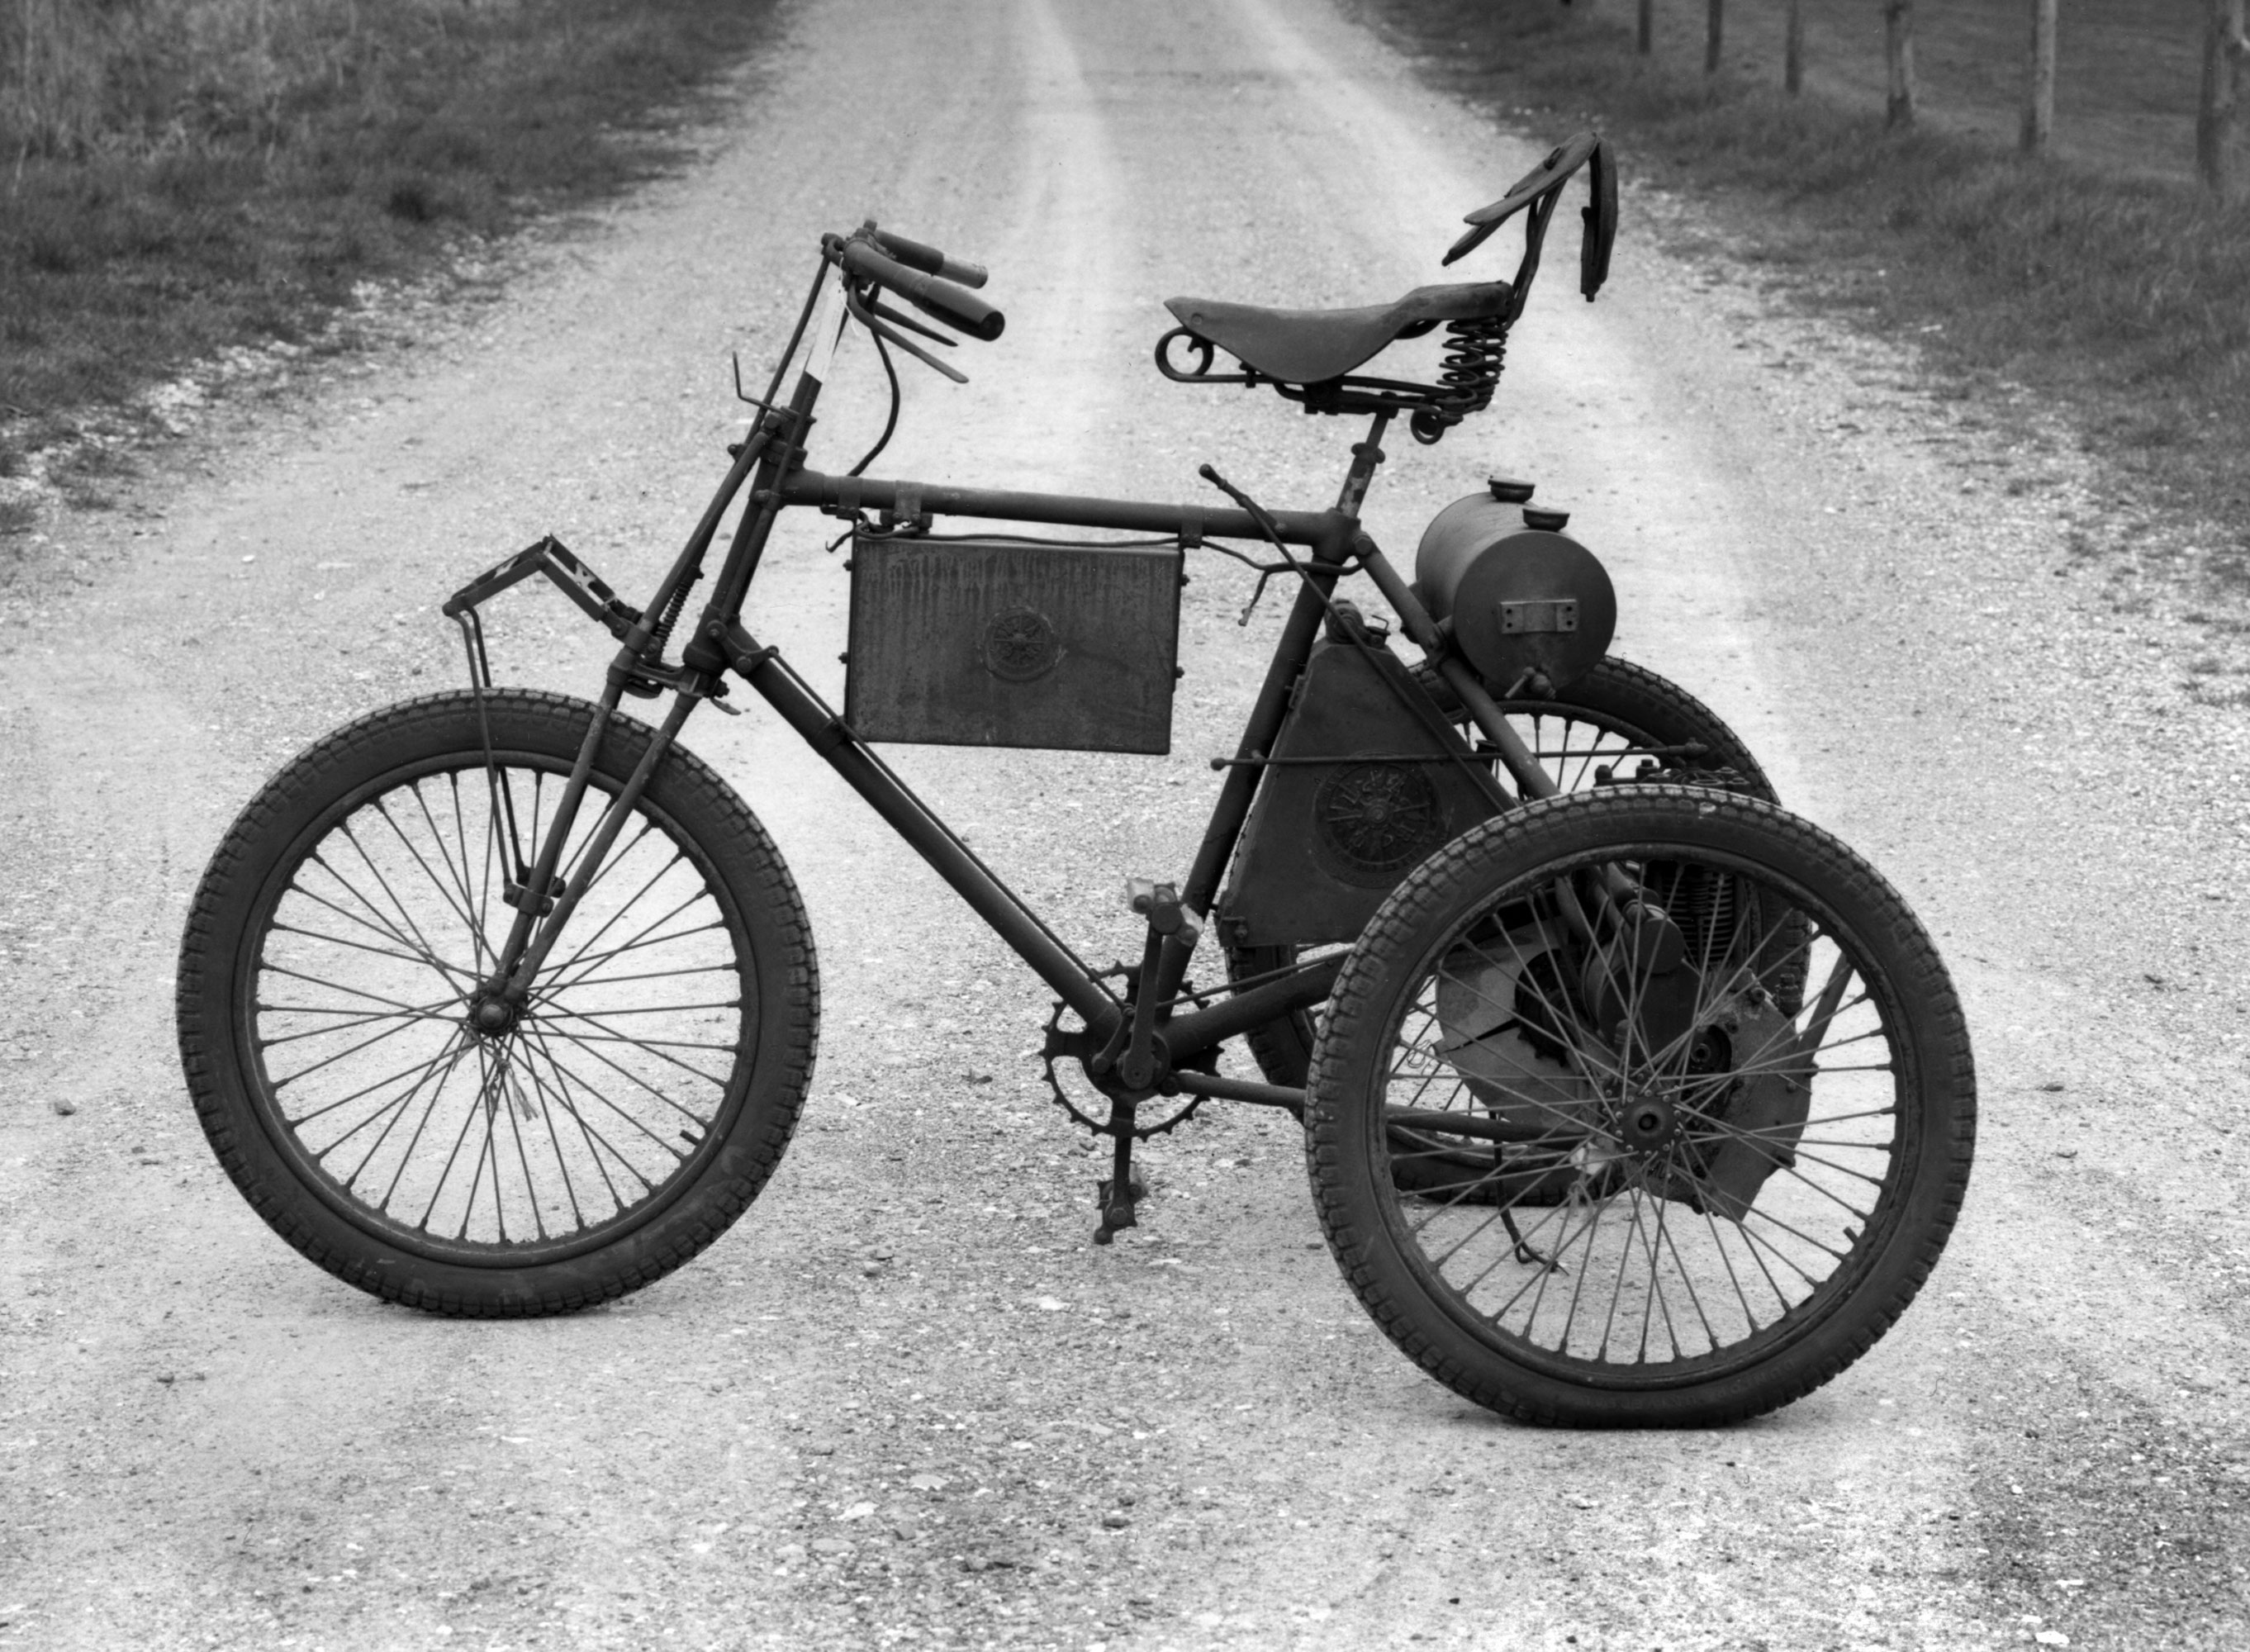 A 1900 De Dion Bouton Tricycle